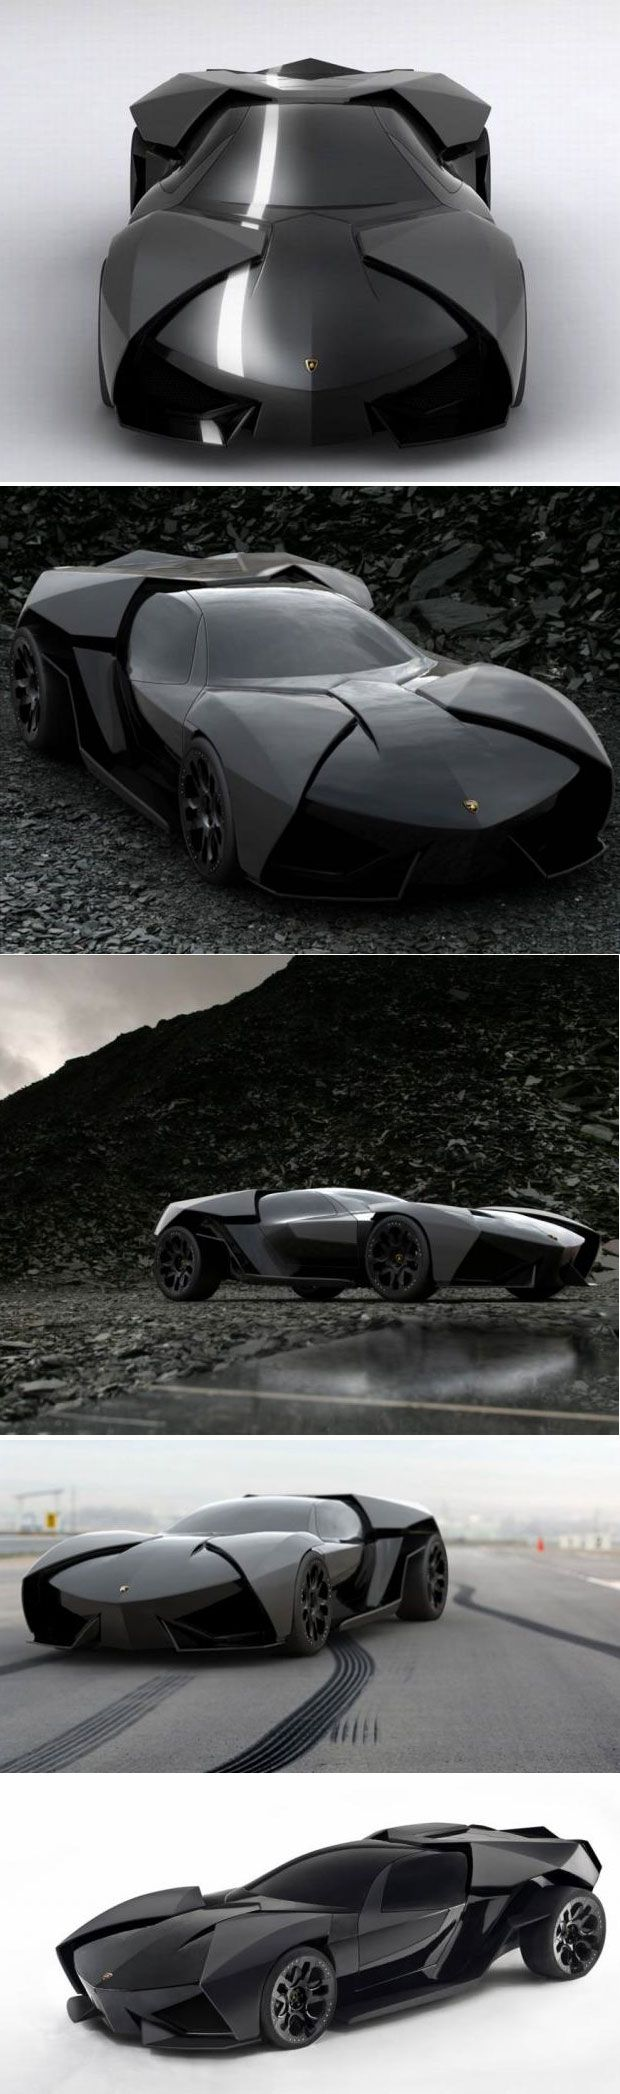 "Lambo- looks like the next ""Batman"" car and definitely better than that tank they had in the recent films lol"